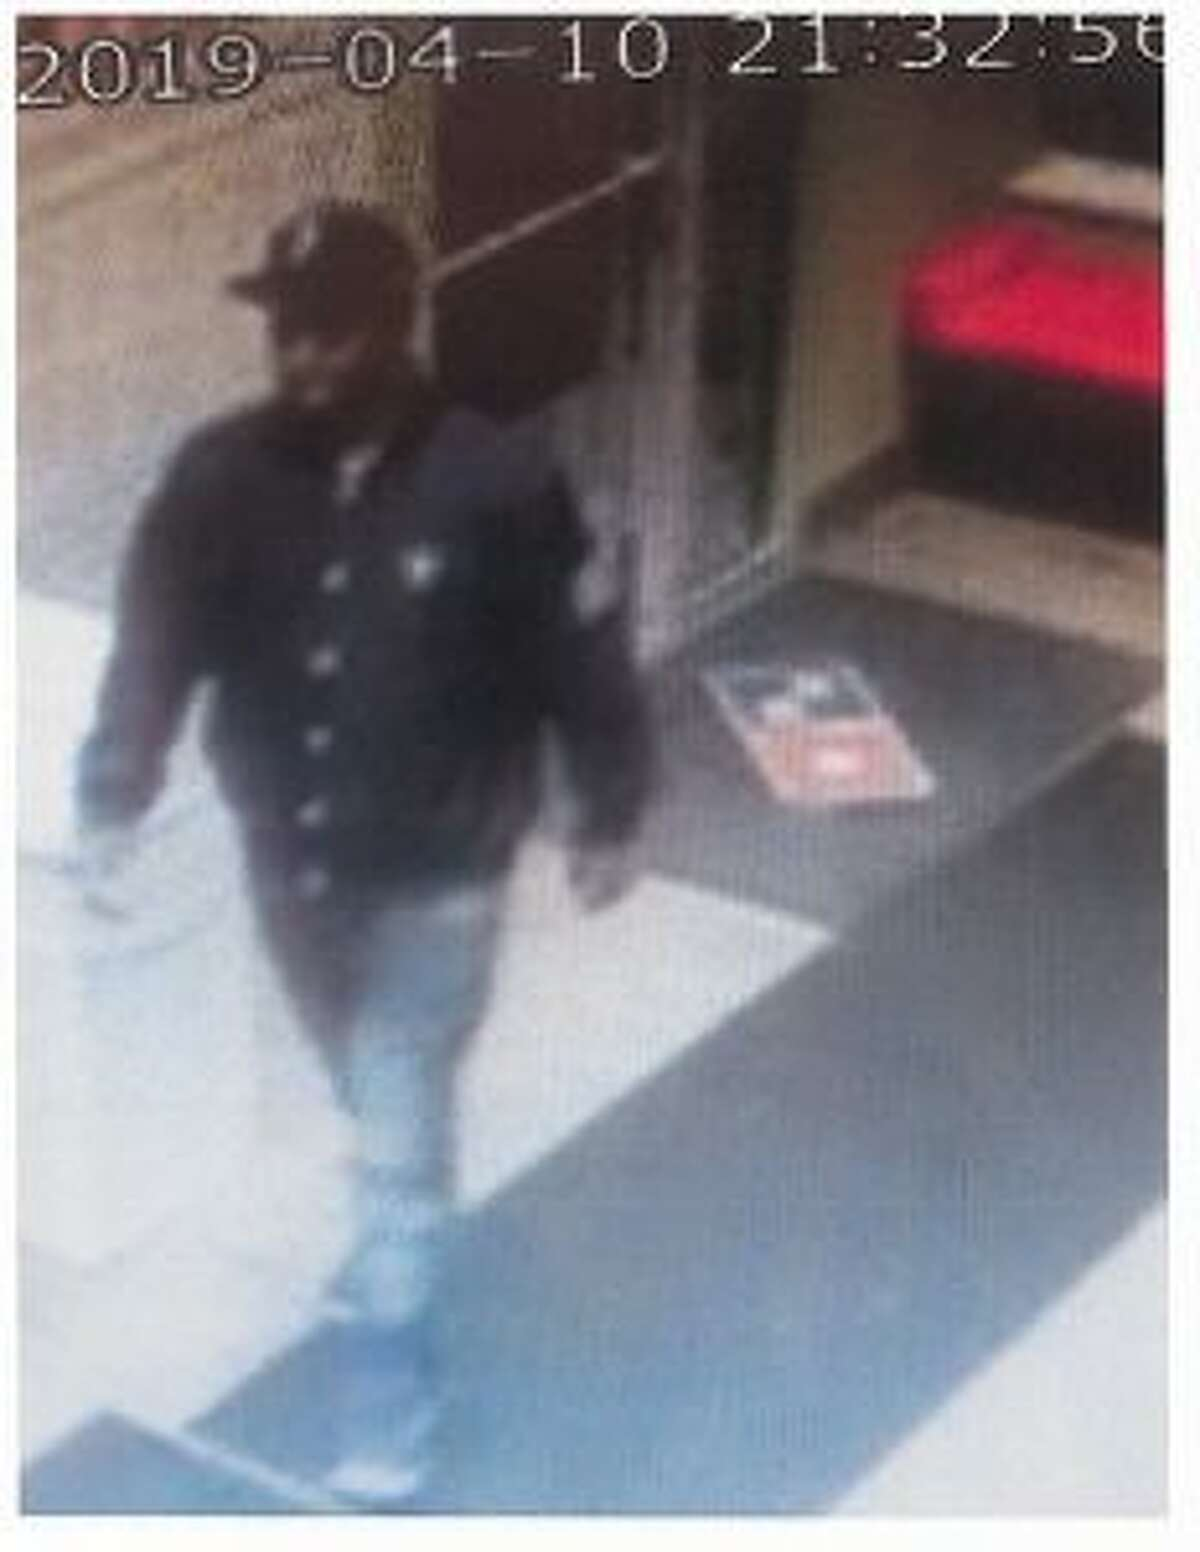 One of the suspect's who allegedly passed counterfeit $100 bills at area businesses on Wednesday night is seen in video footage, provided by the Big Rapids Department of Public Safety. (Courtesy photo)